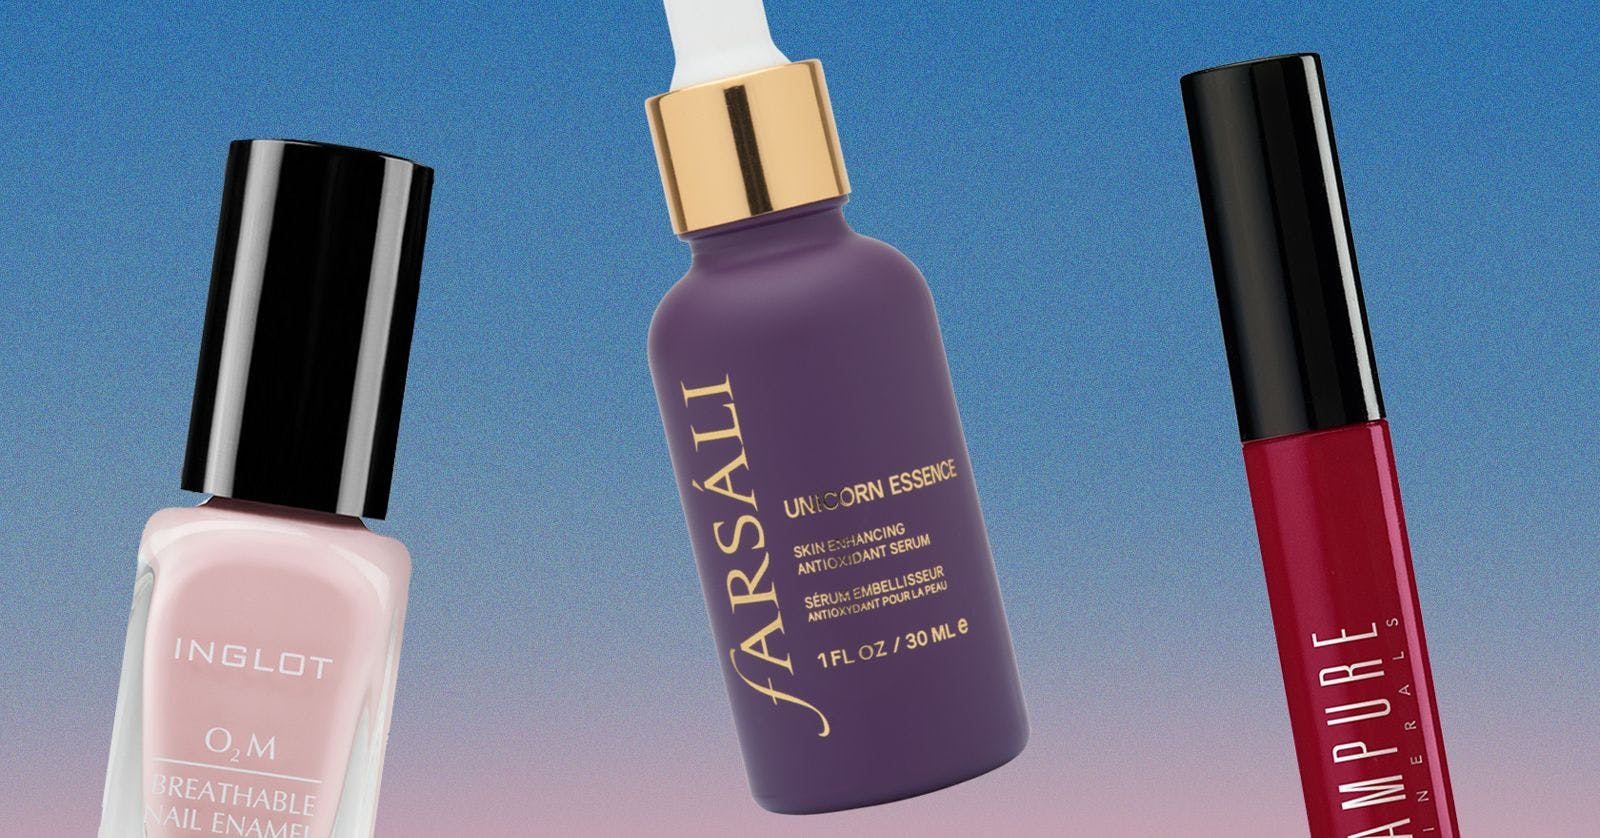 9 halal beauty products every Muslim woman needs in her make-up bag